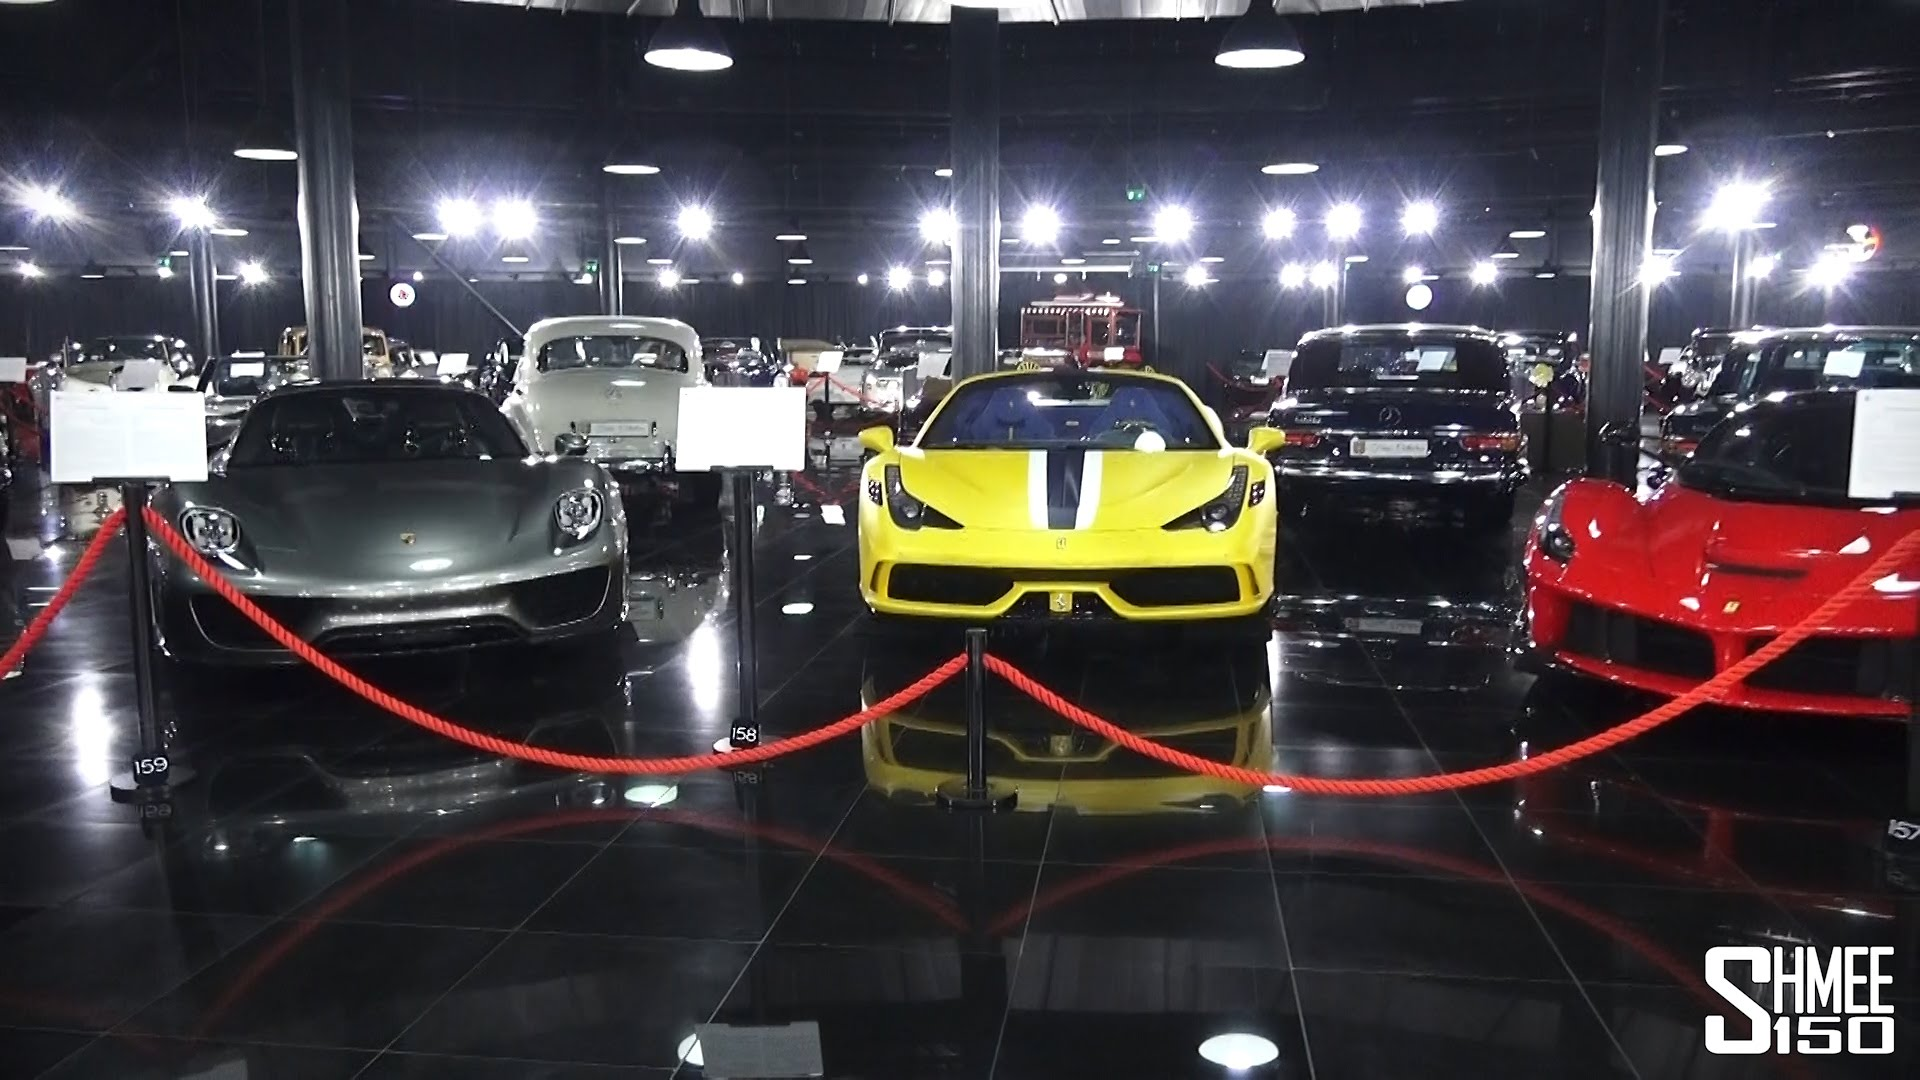 Check Out The Romania's BEST Car Collection That Will Leave You In Awe